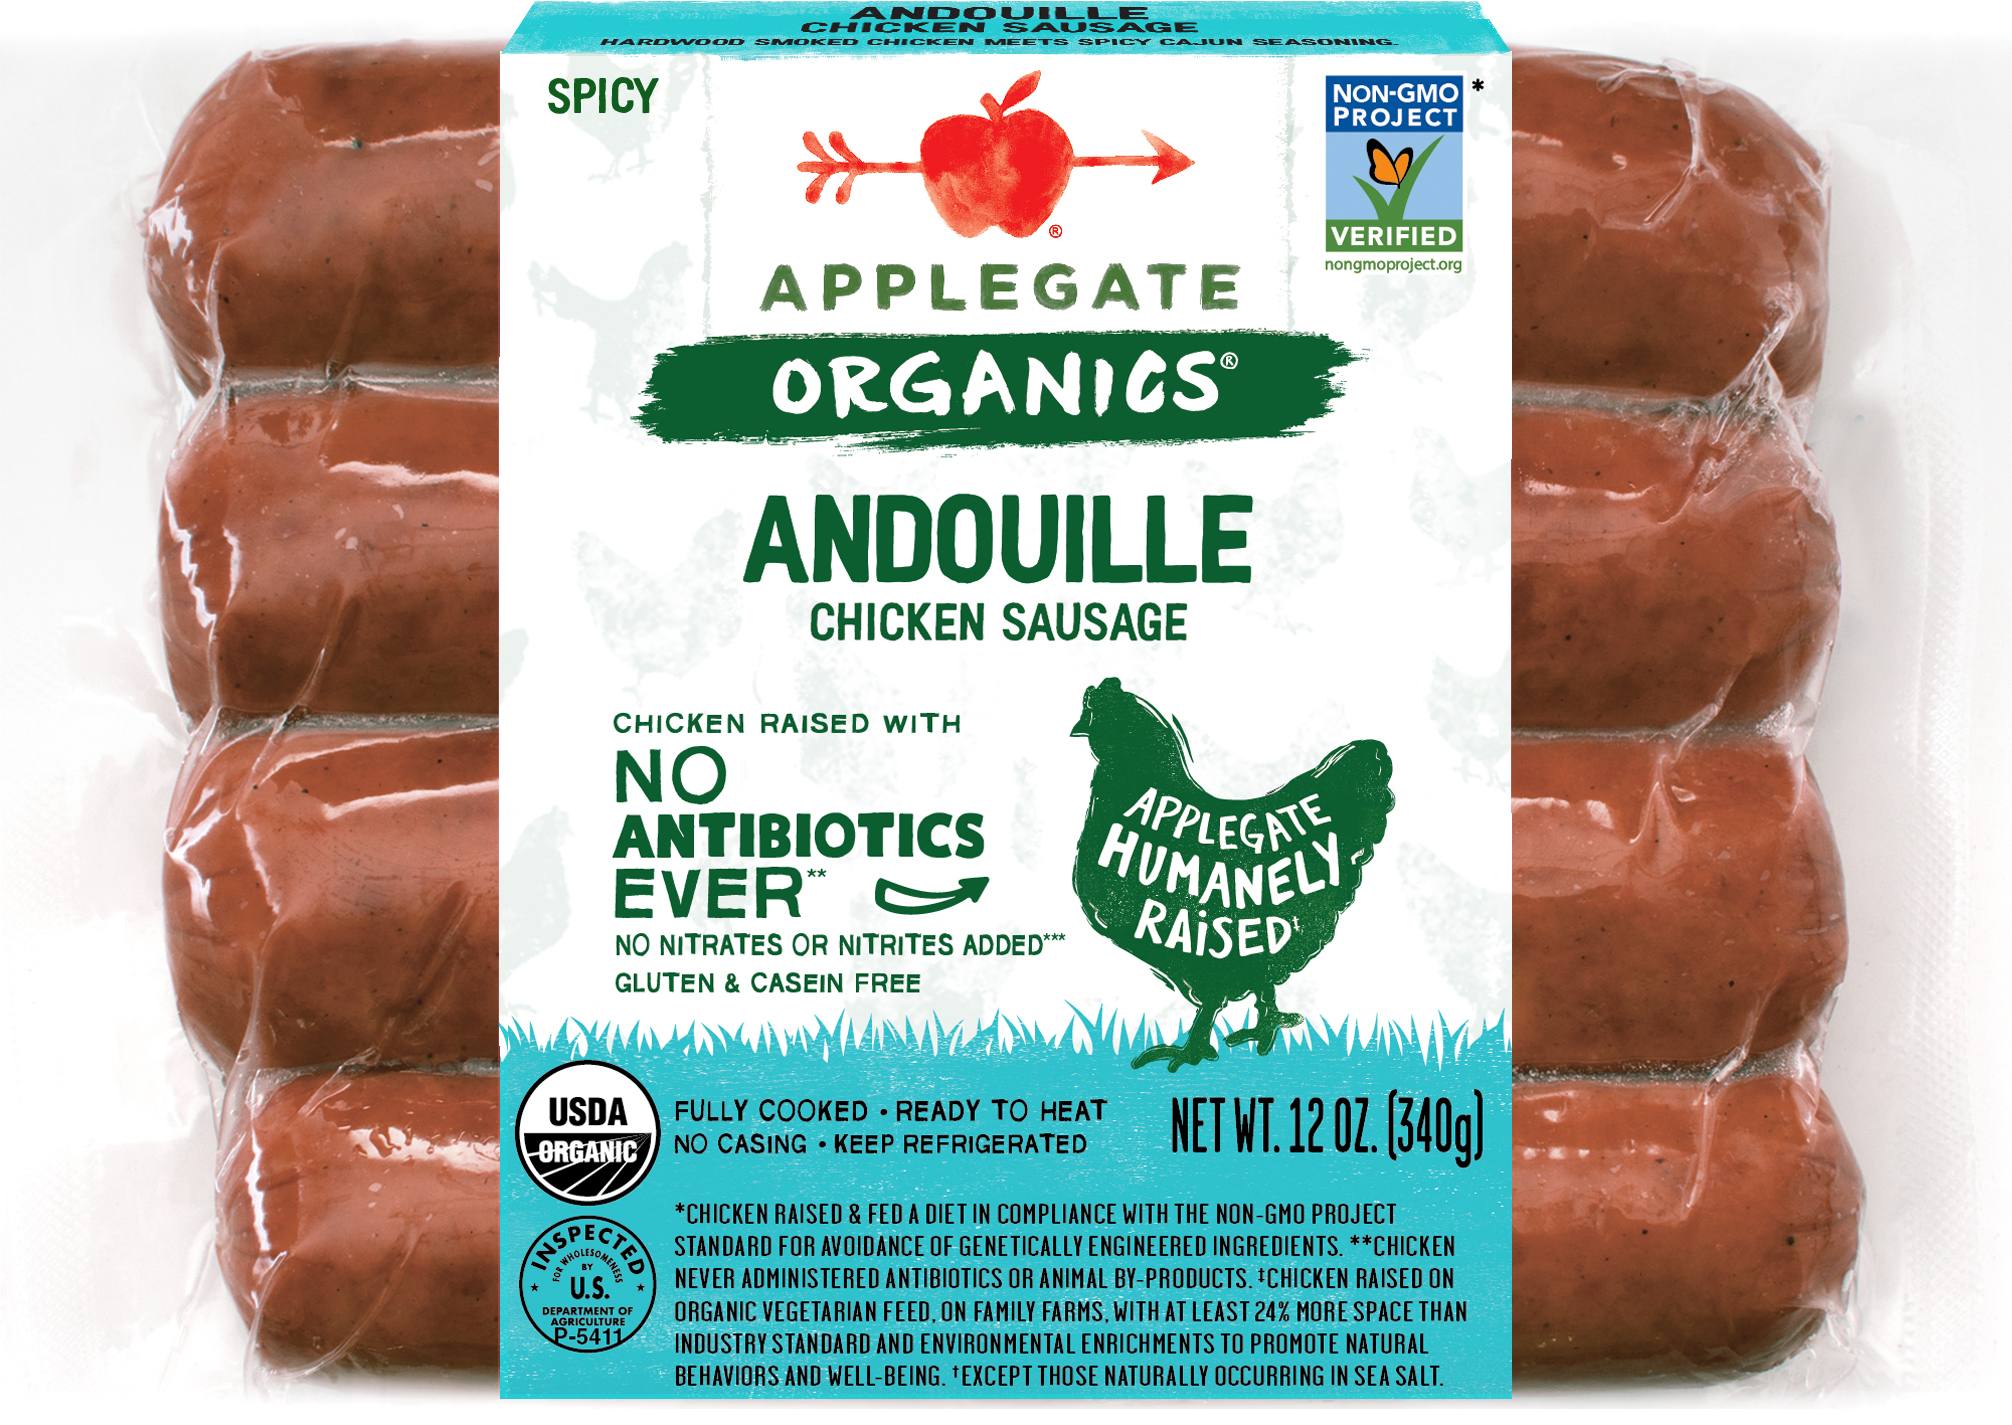 SPICY ANDOUILLE CHICKEN SAUSAGE | The Natural Products